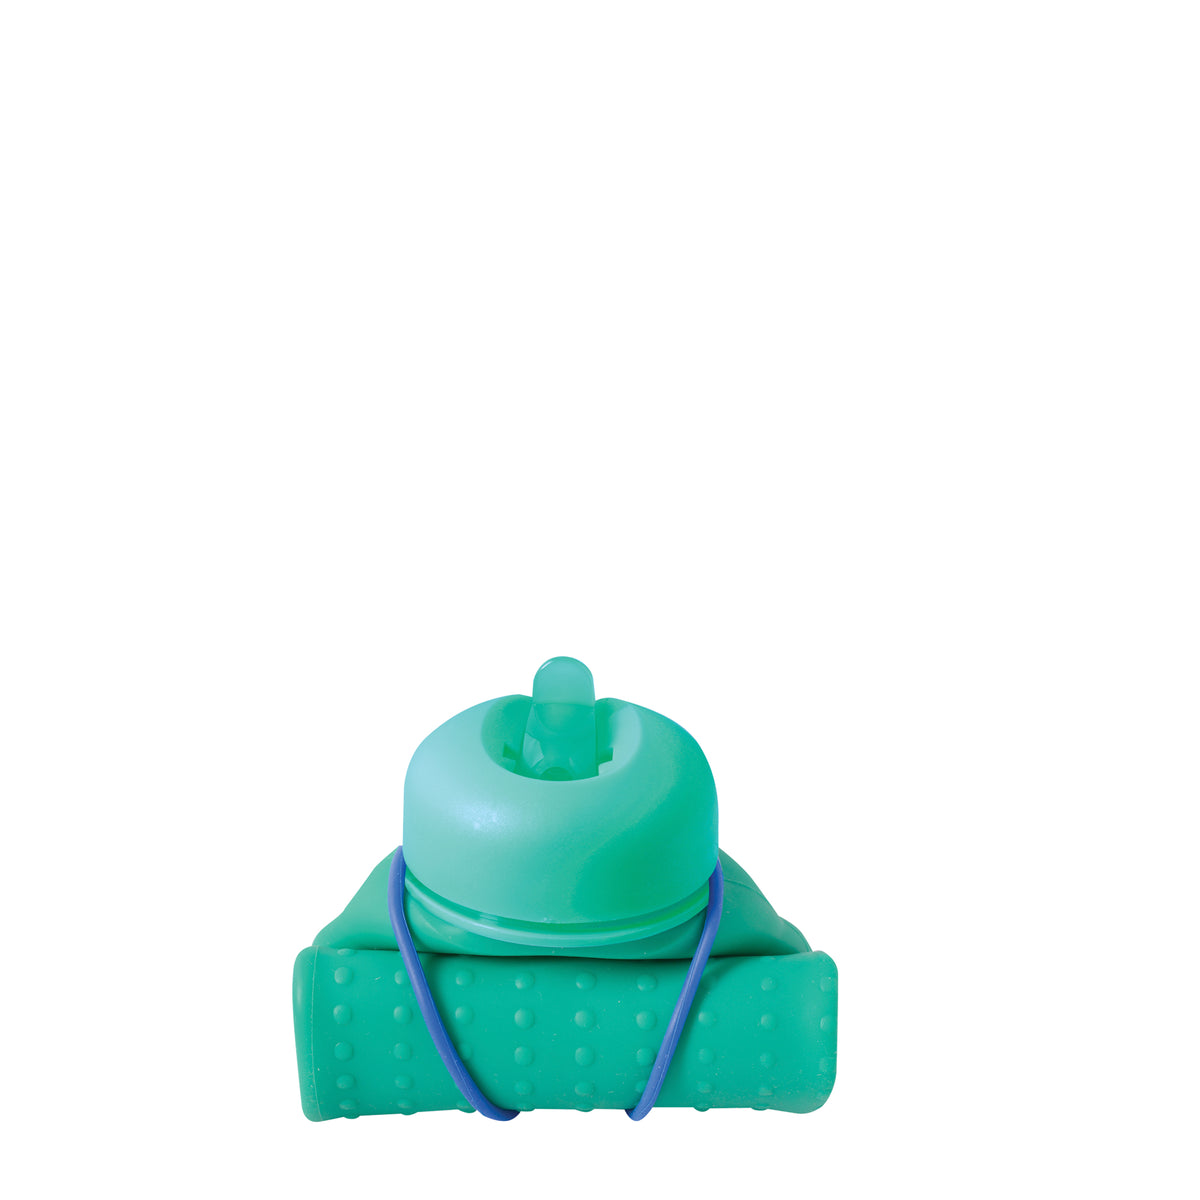 Rolla Bottle - Green, Teal Lid + Cobalt Strap